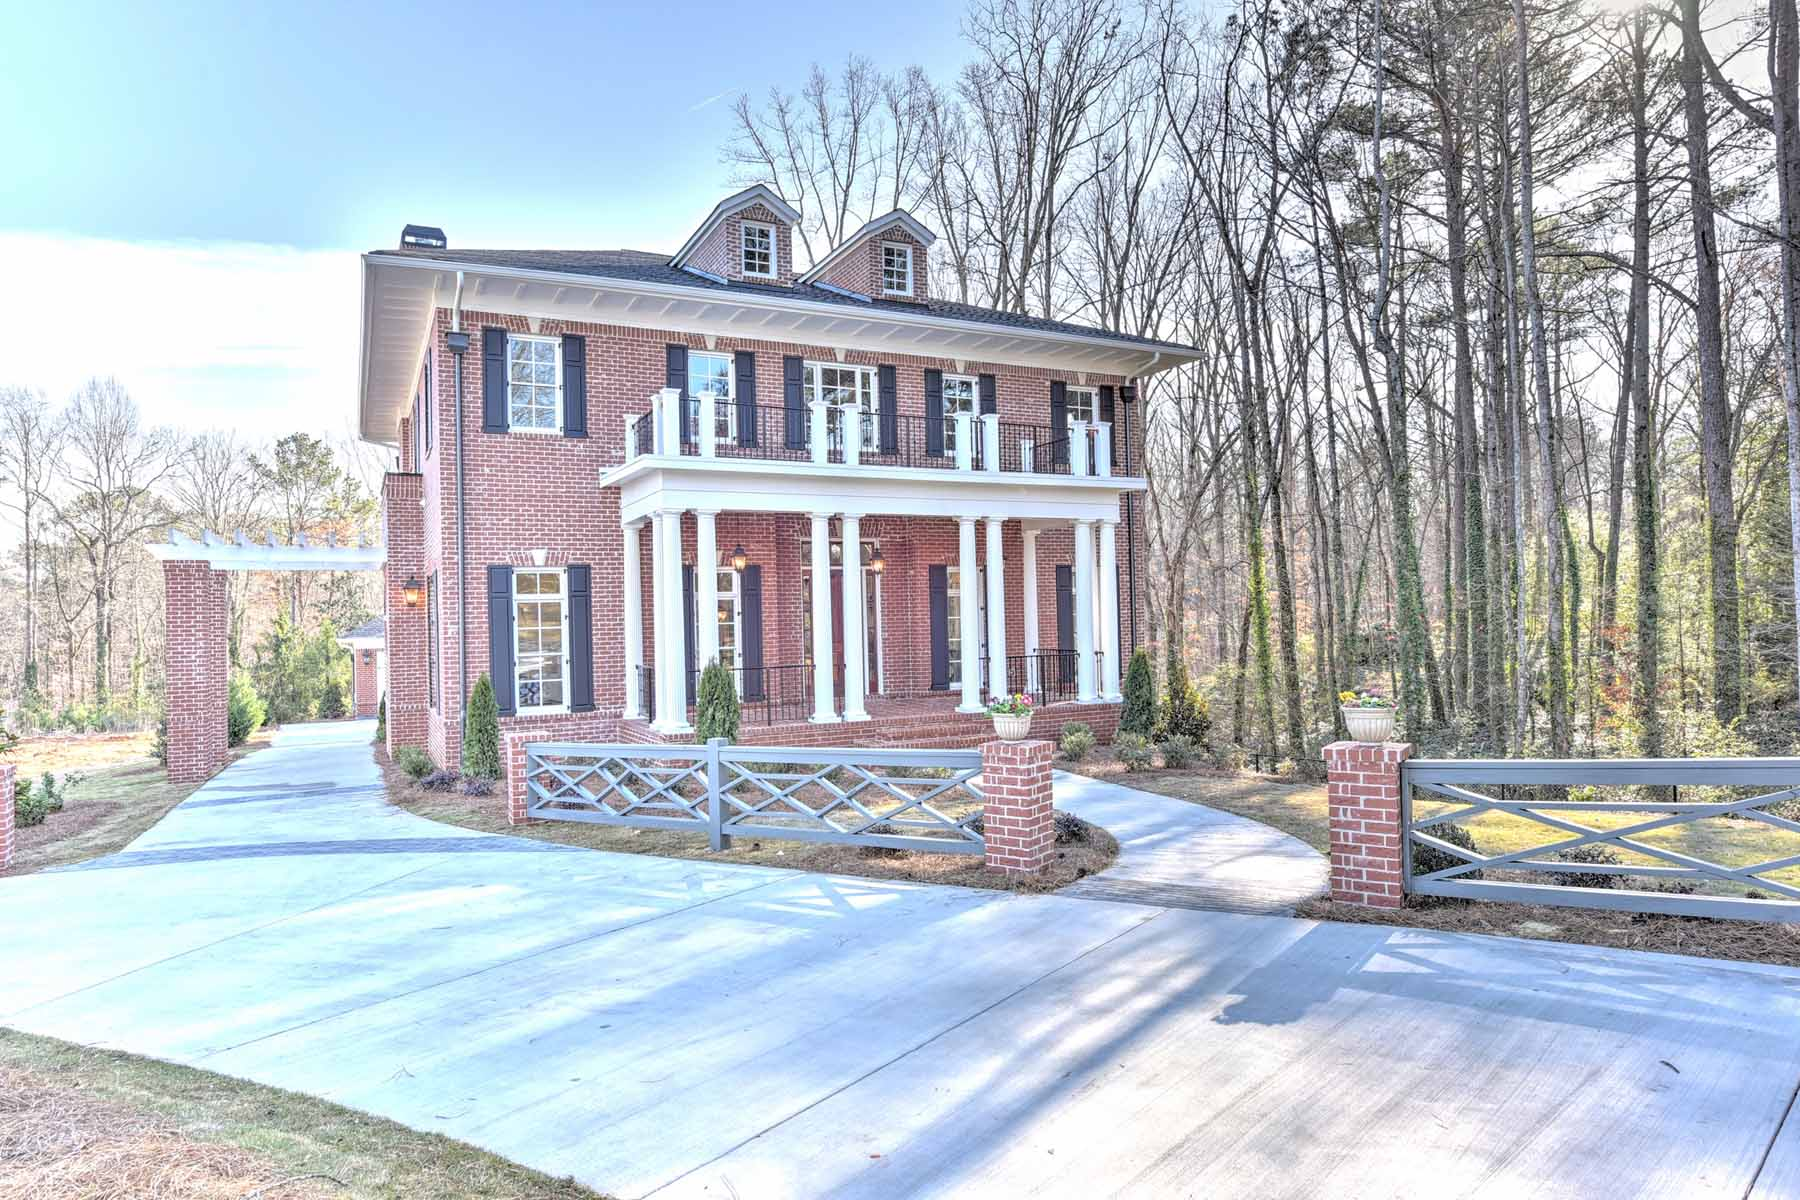 Vivienda unifamiliar por un Venta en Stunning Georgian Revival-style architecture by award winning Cablik Enterprise 5140 Timber Ridge Road Marietta, Georgia, 30068 Estados Unidos